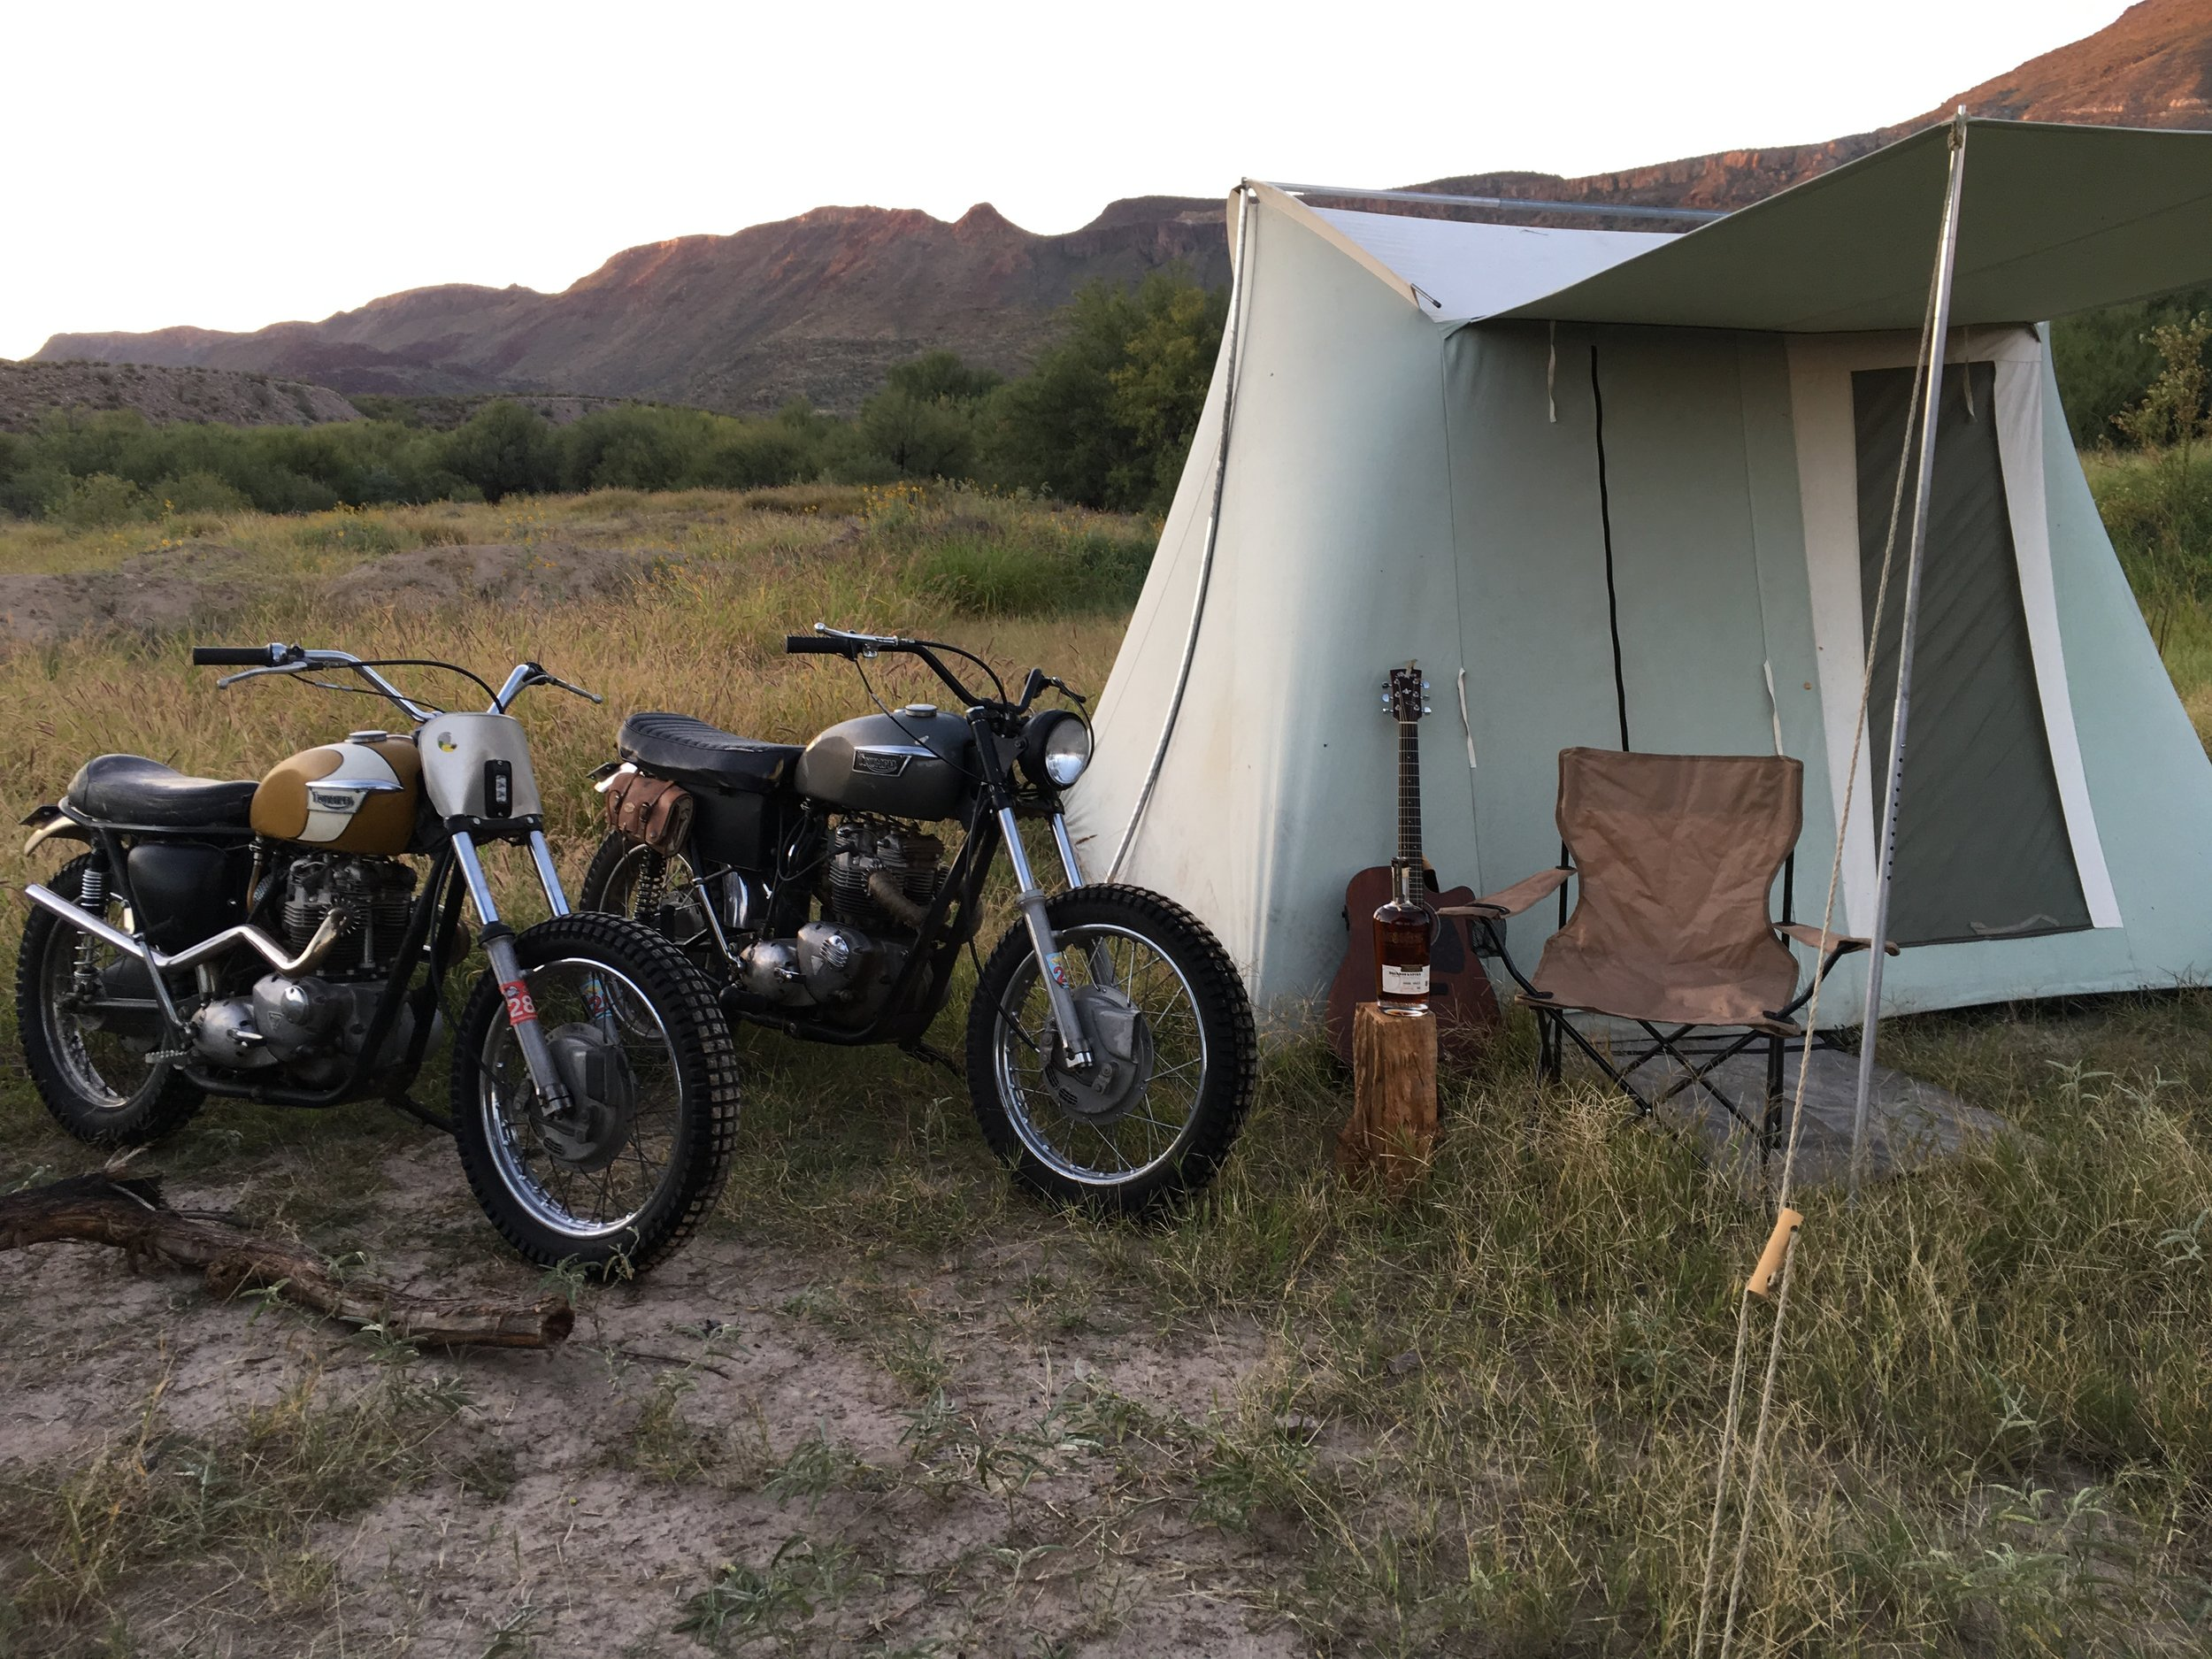 """My buddy Jake Hayhurst brought """"Frank"""" (short for Frankenstein,) a 1971 Bonneville frame with a 1973 750cc engine. Frank and Goldie seen here in front of Jake's tent, just hanging and dreaming about the desert."""